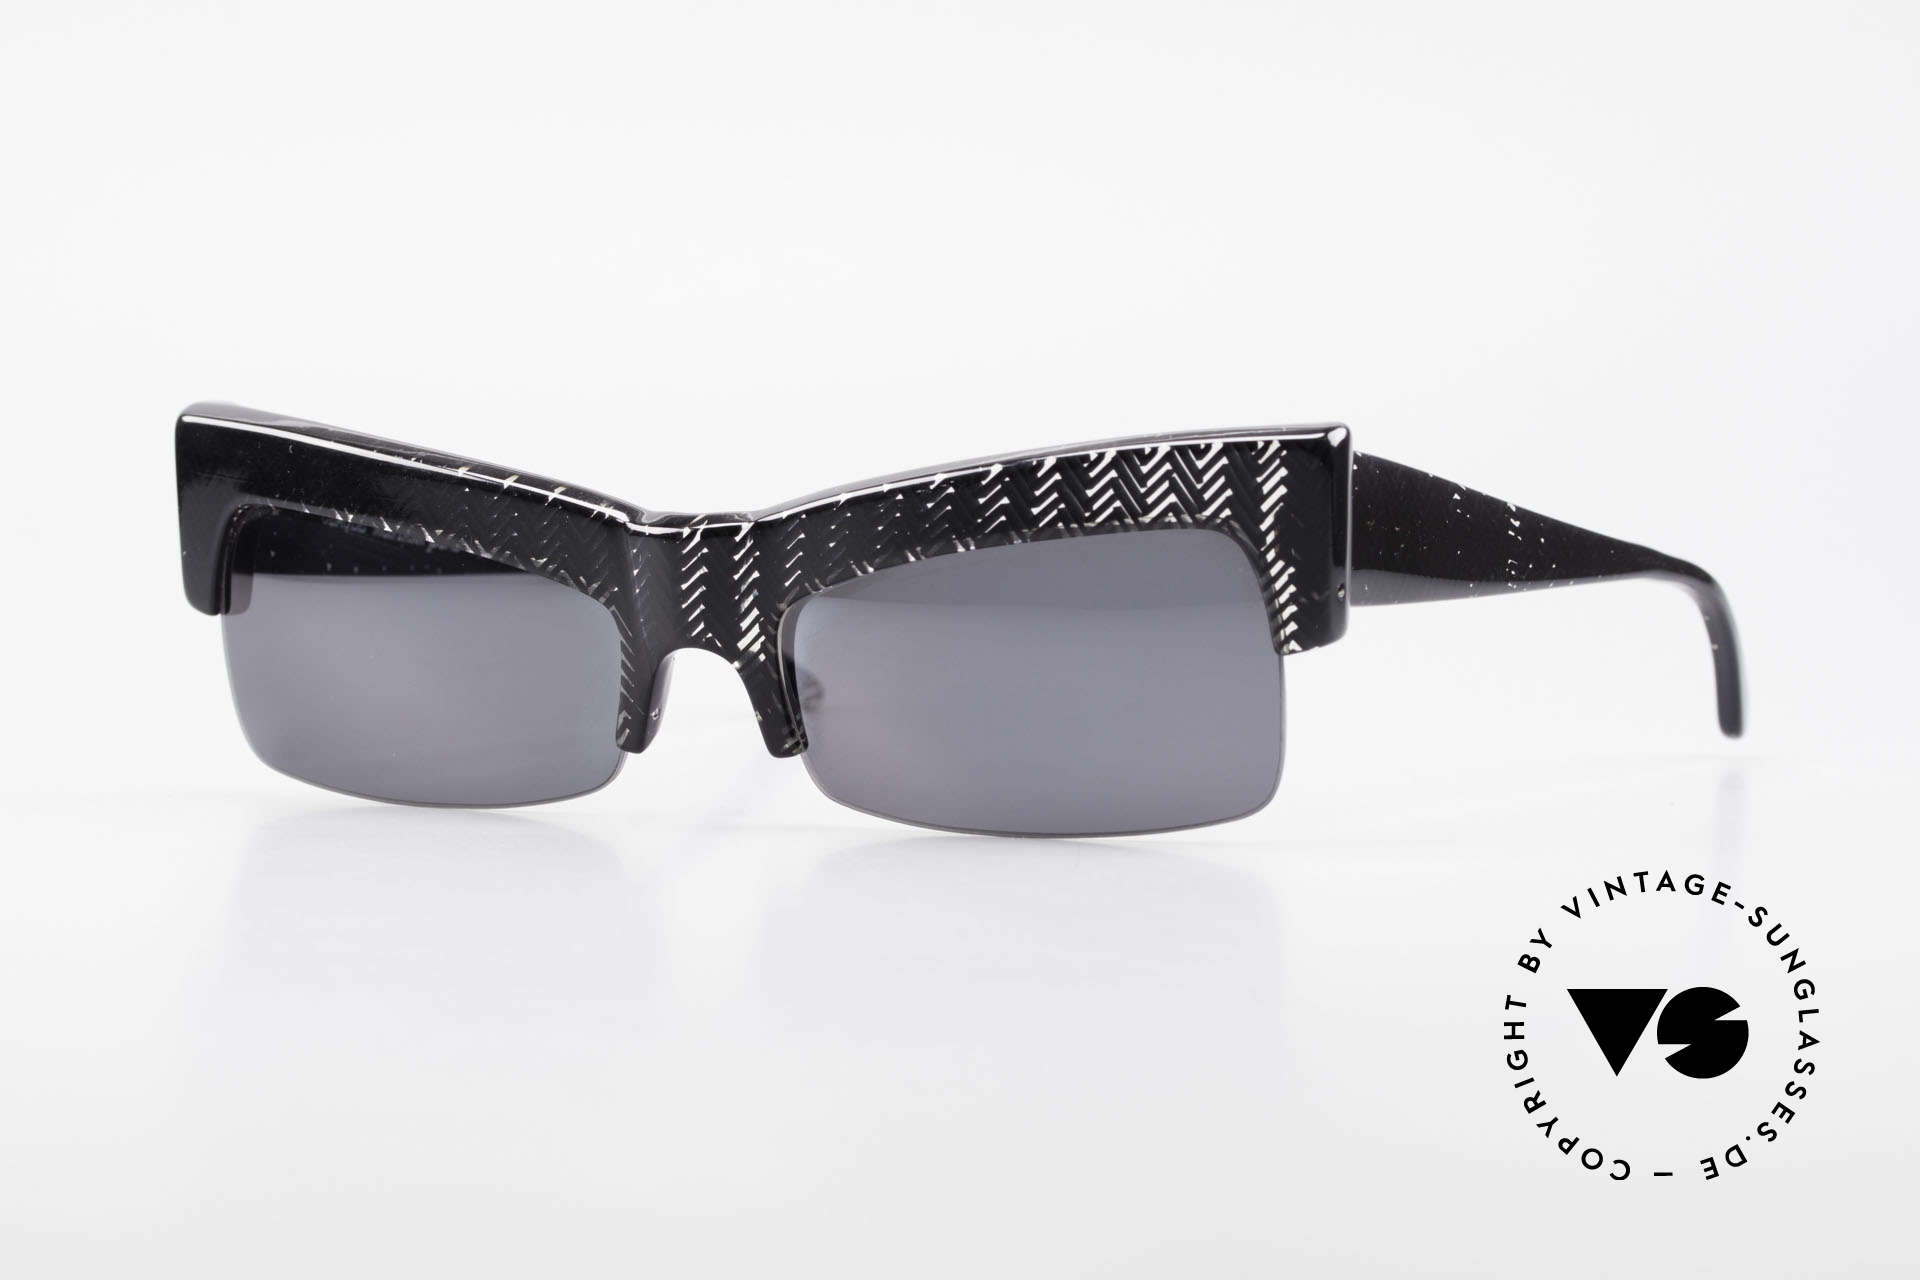 Claude Montana 522 1980's Design by Alain Mikli, vintage Claude Montana sunglasses from the late 80's, Made for Women